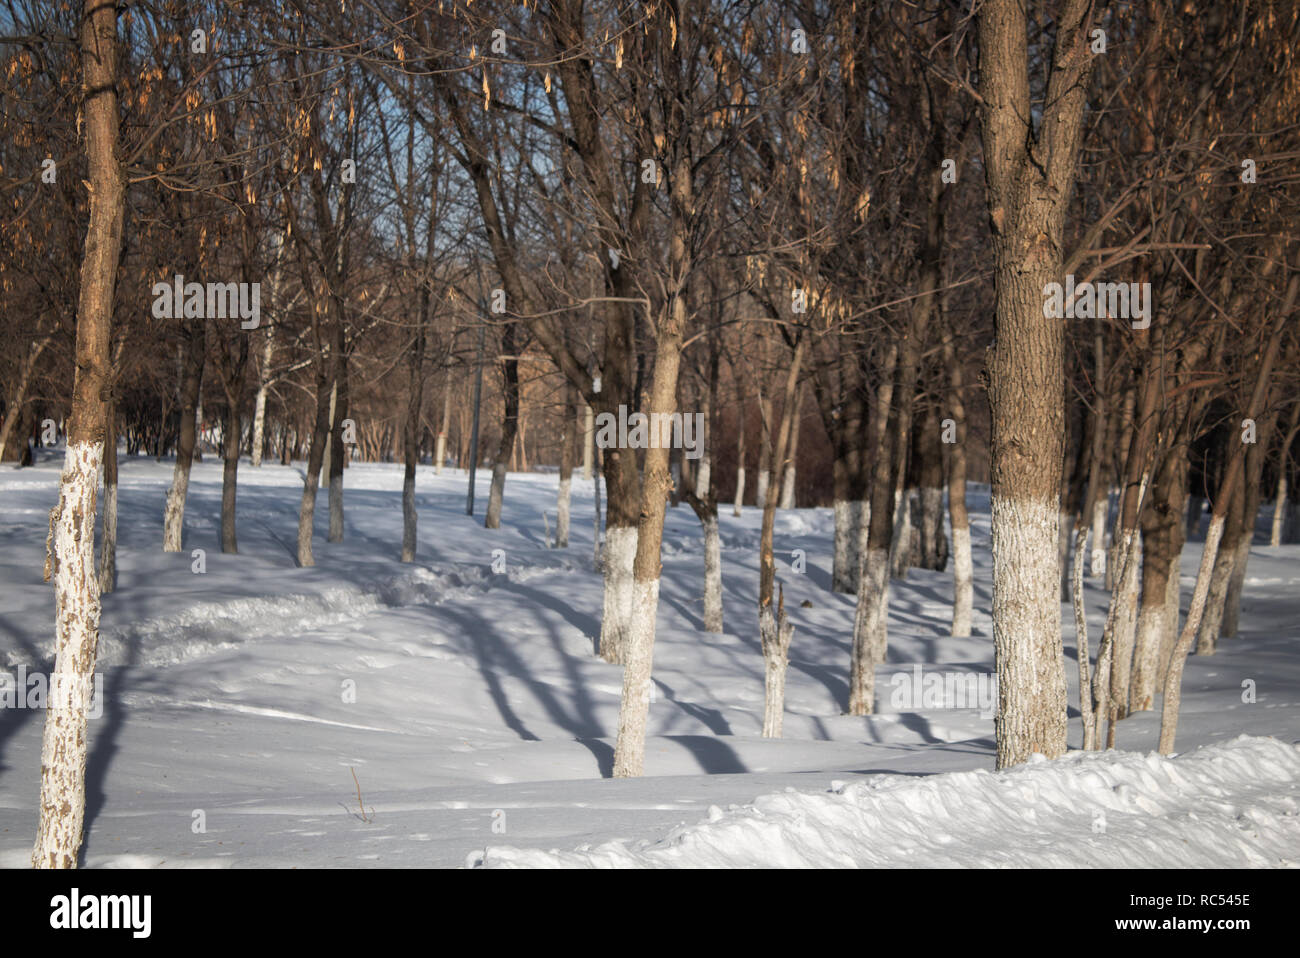 Winter park. Winter background. Snow and trees. Winter landscape. - Stock Image